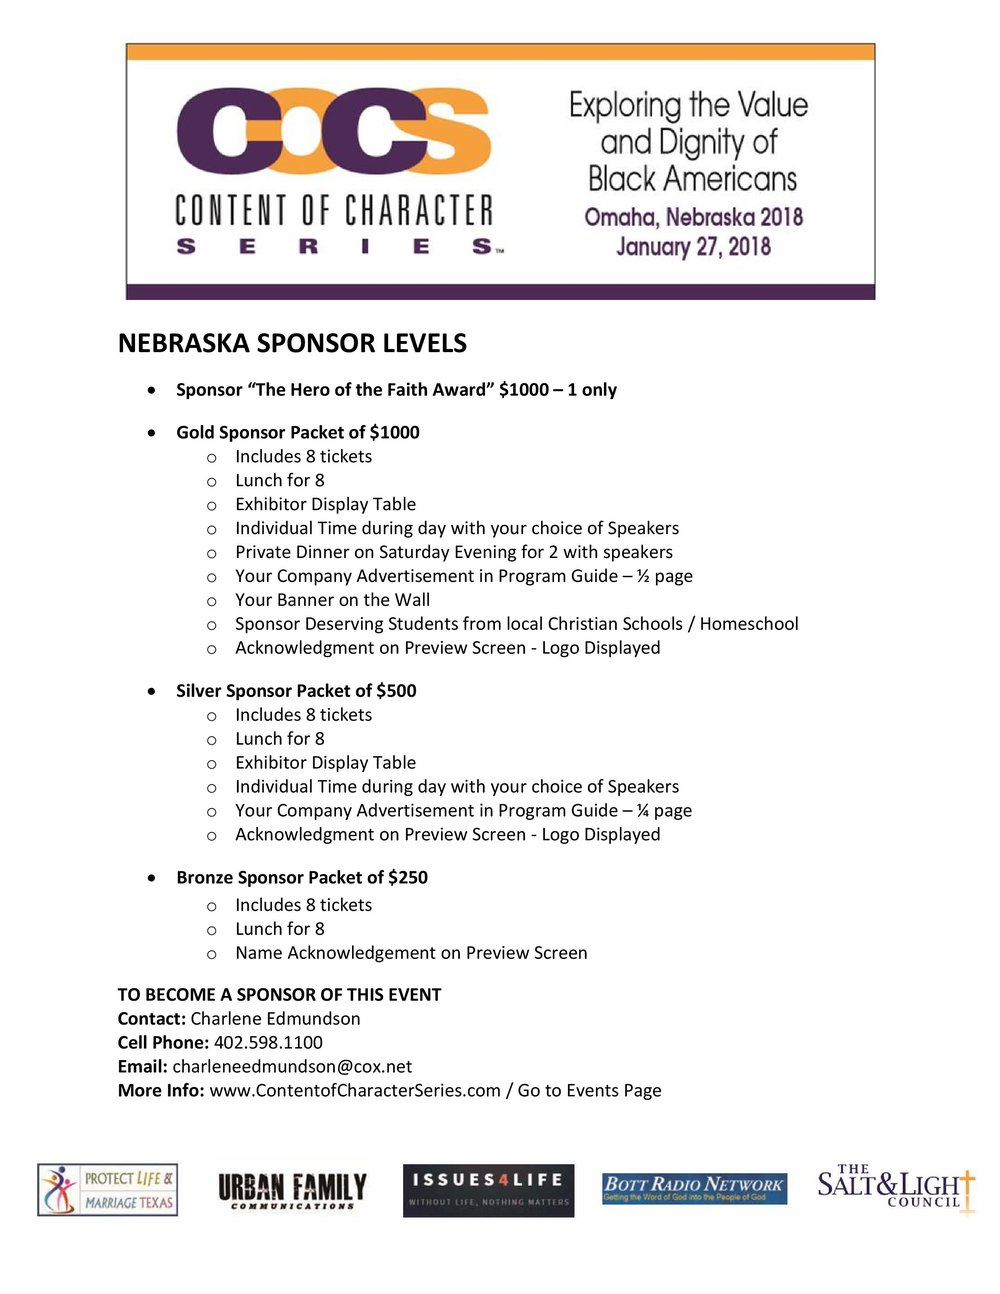 COCS Omaha 2018 Sponsorship Information Packets-page-001.jpg